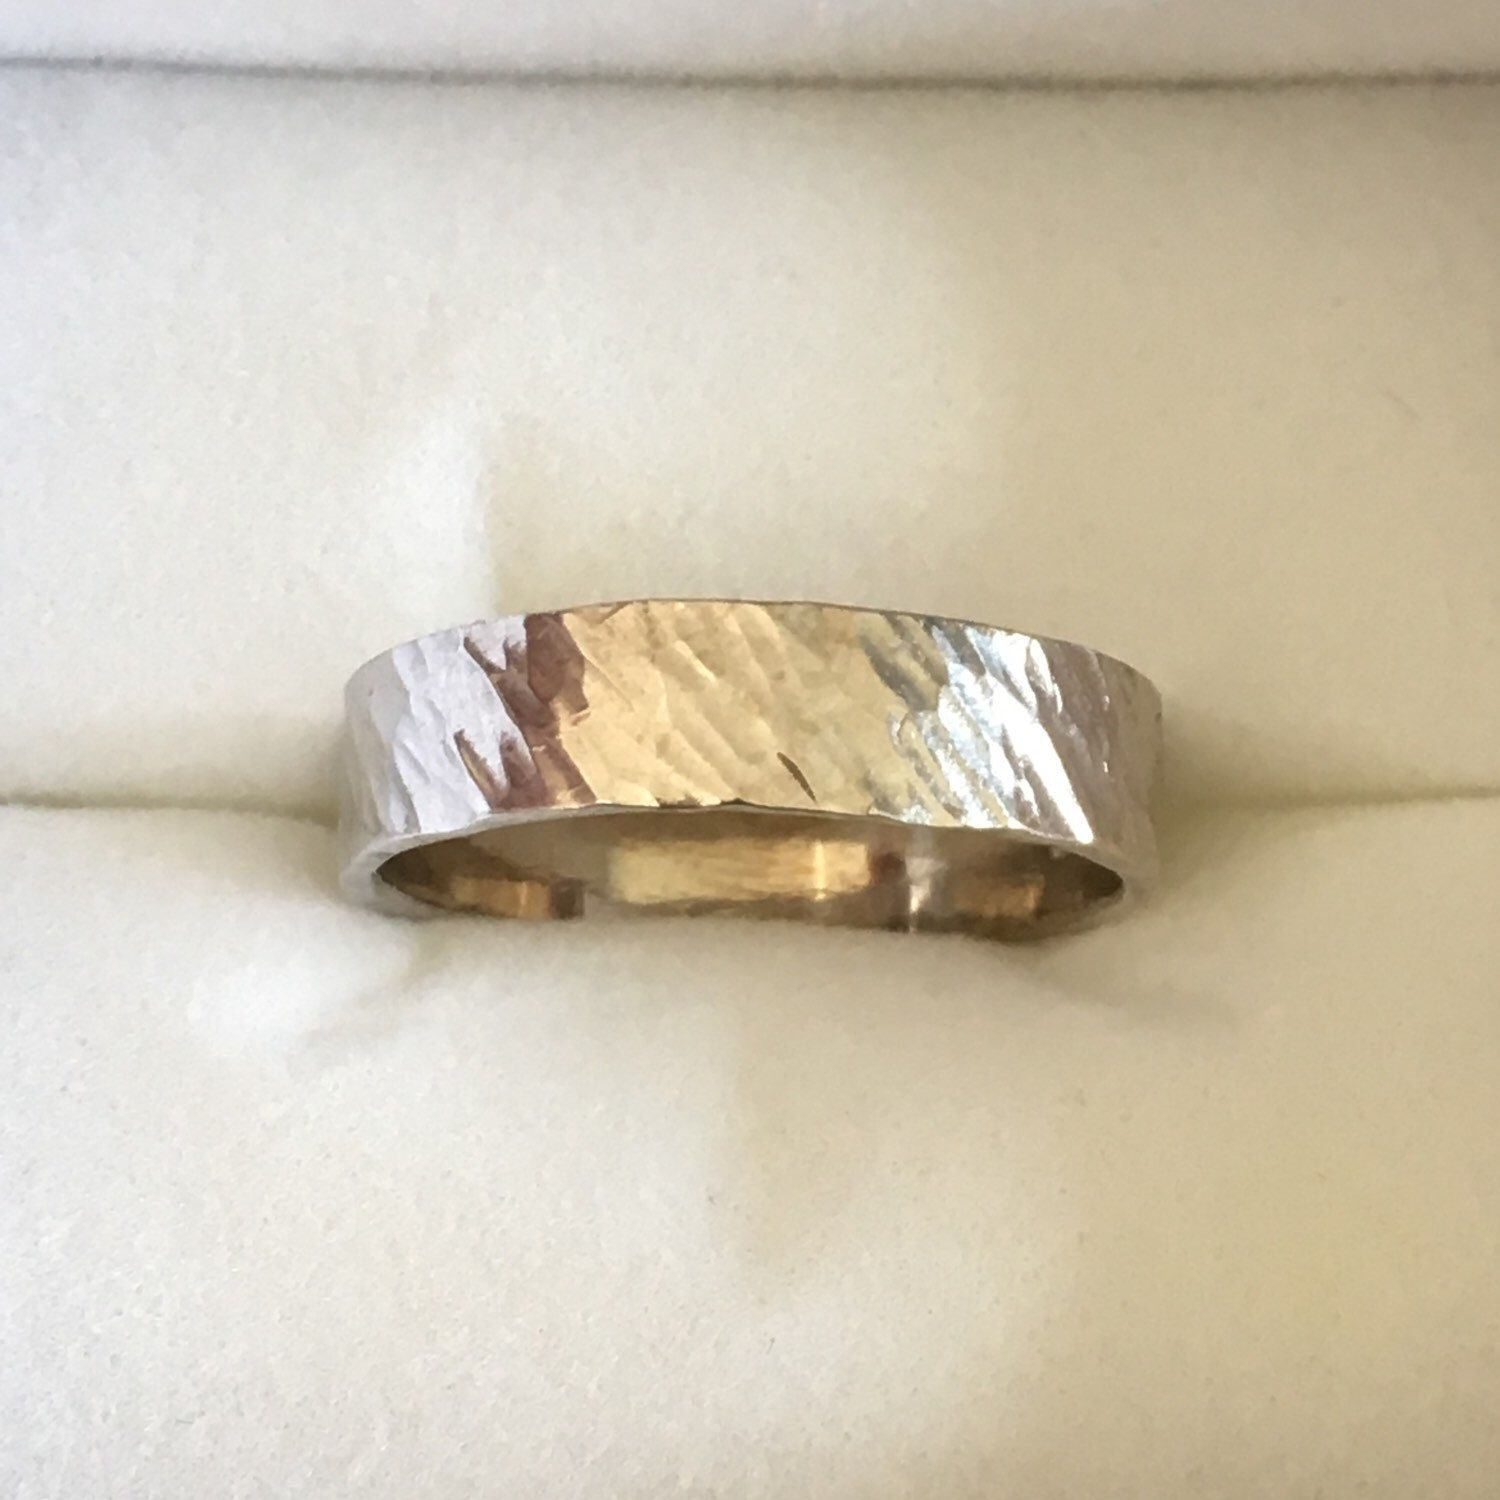 bark silver ring band   barking fc, roots and silver ring